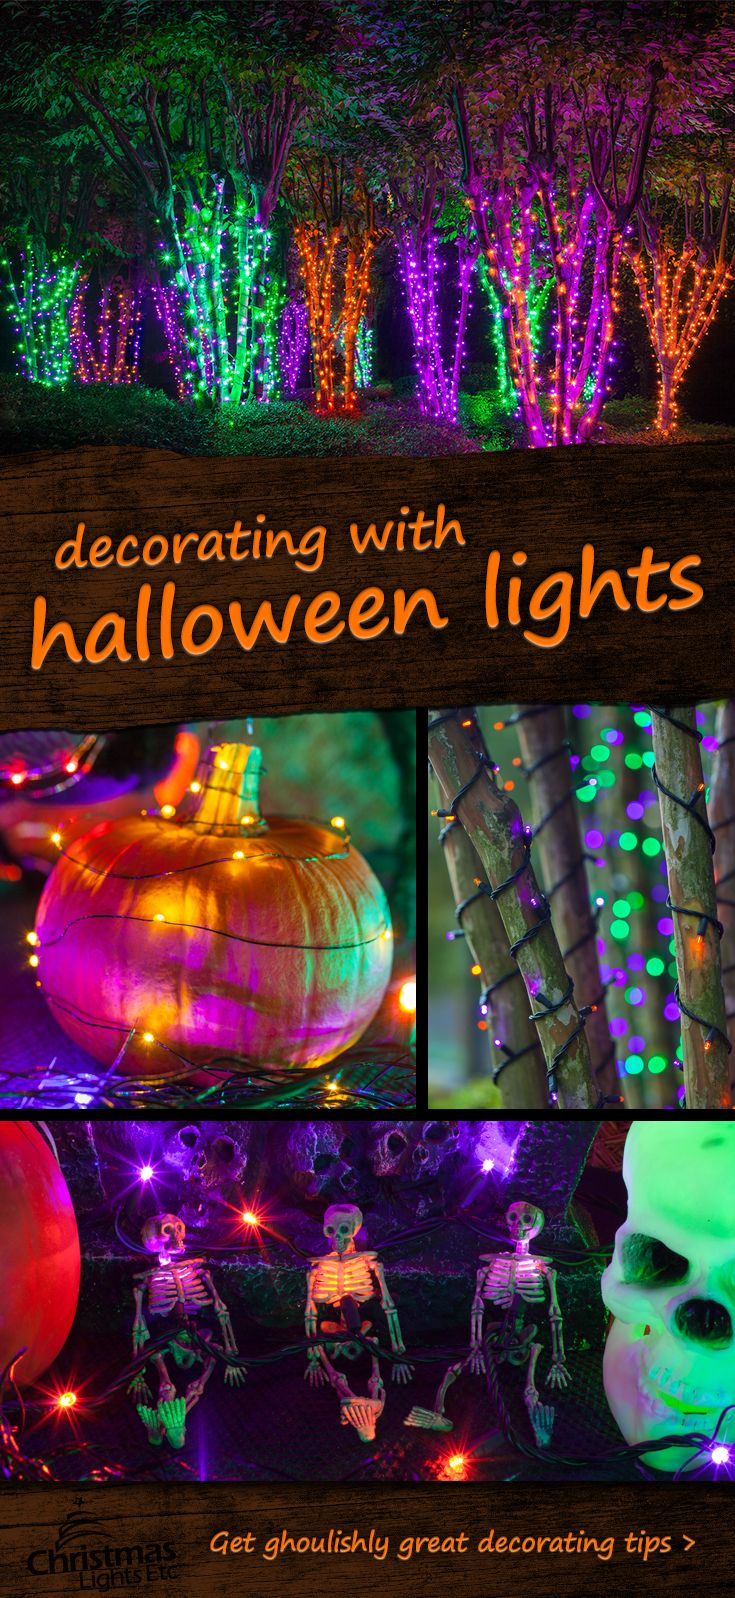 halloween lights and decorations reimagined from christmas - Outside Decorations For Halloween